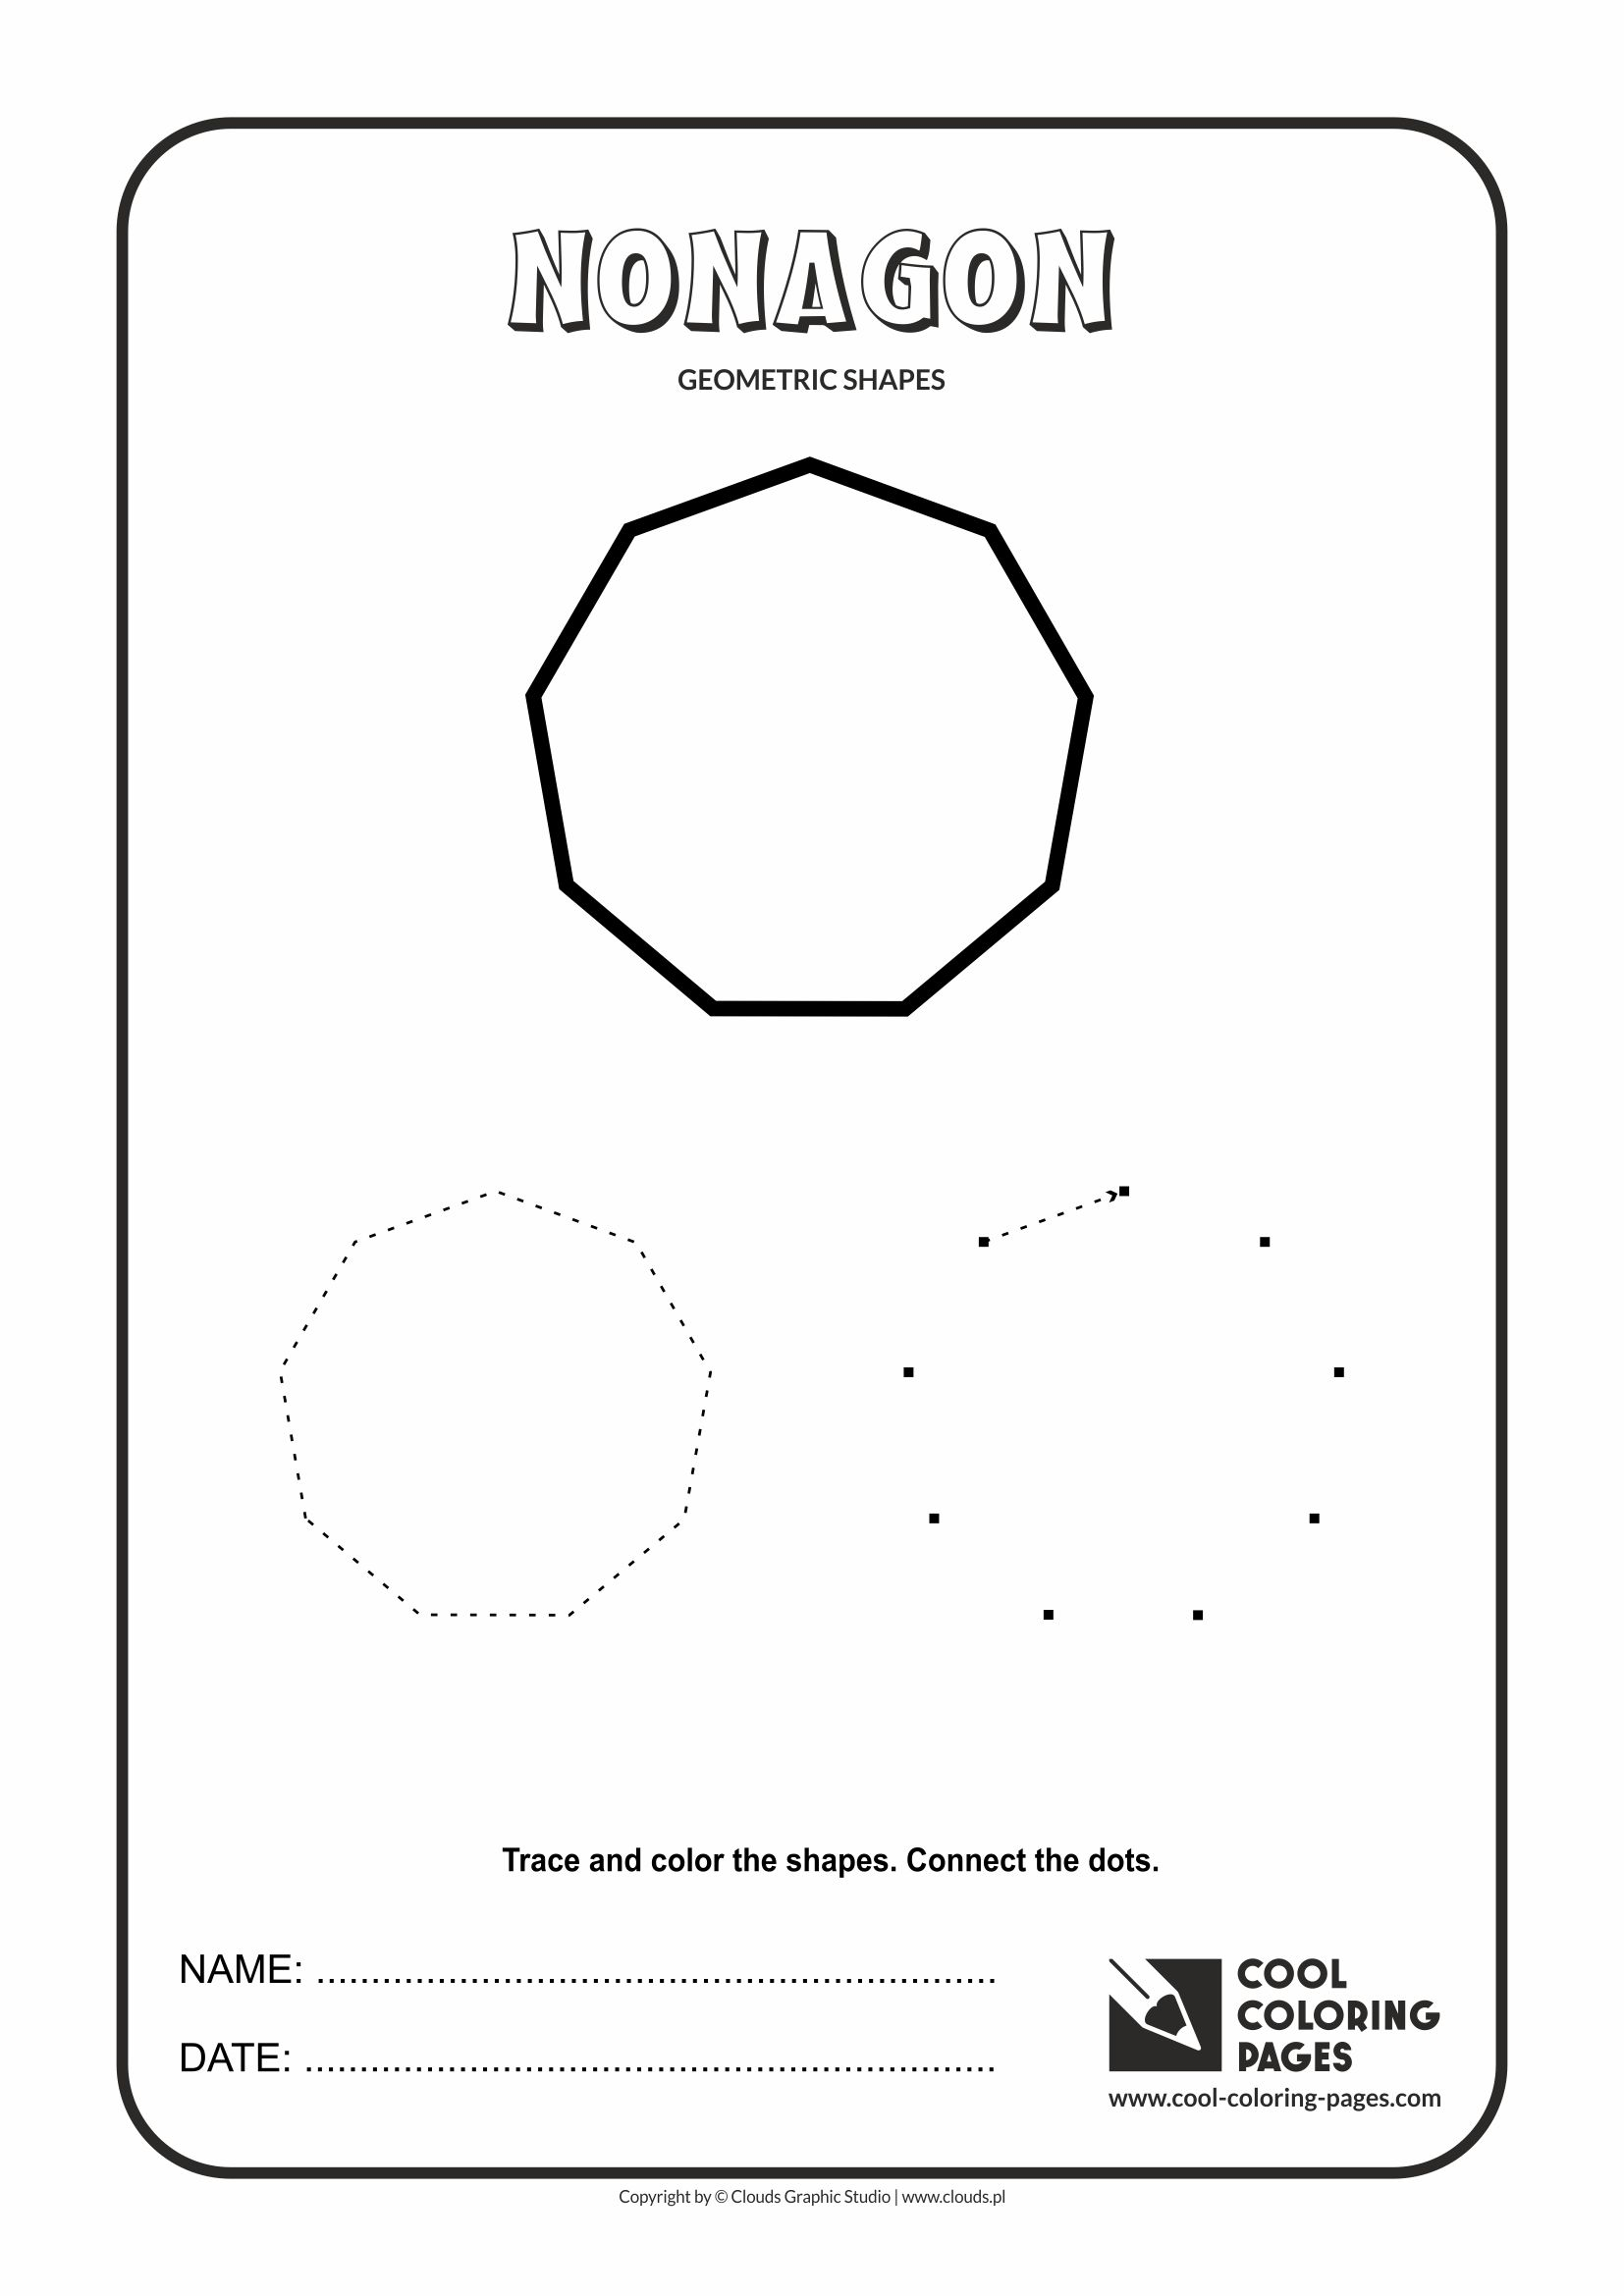 cool coloring pages geometric shapes nonagon